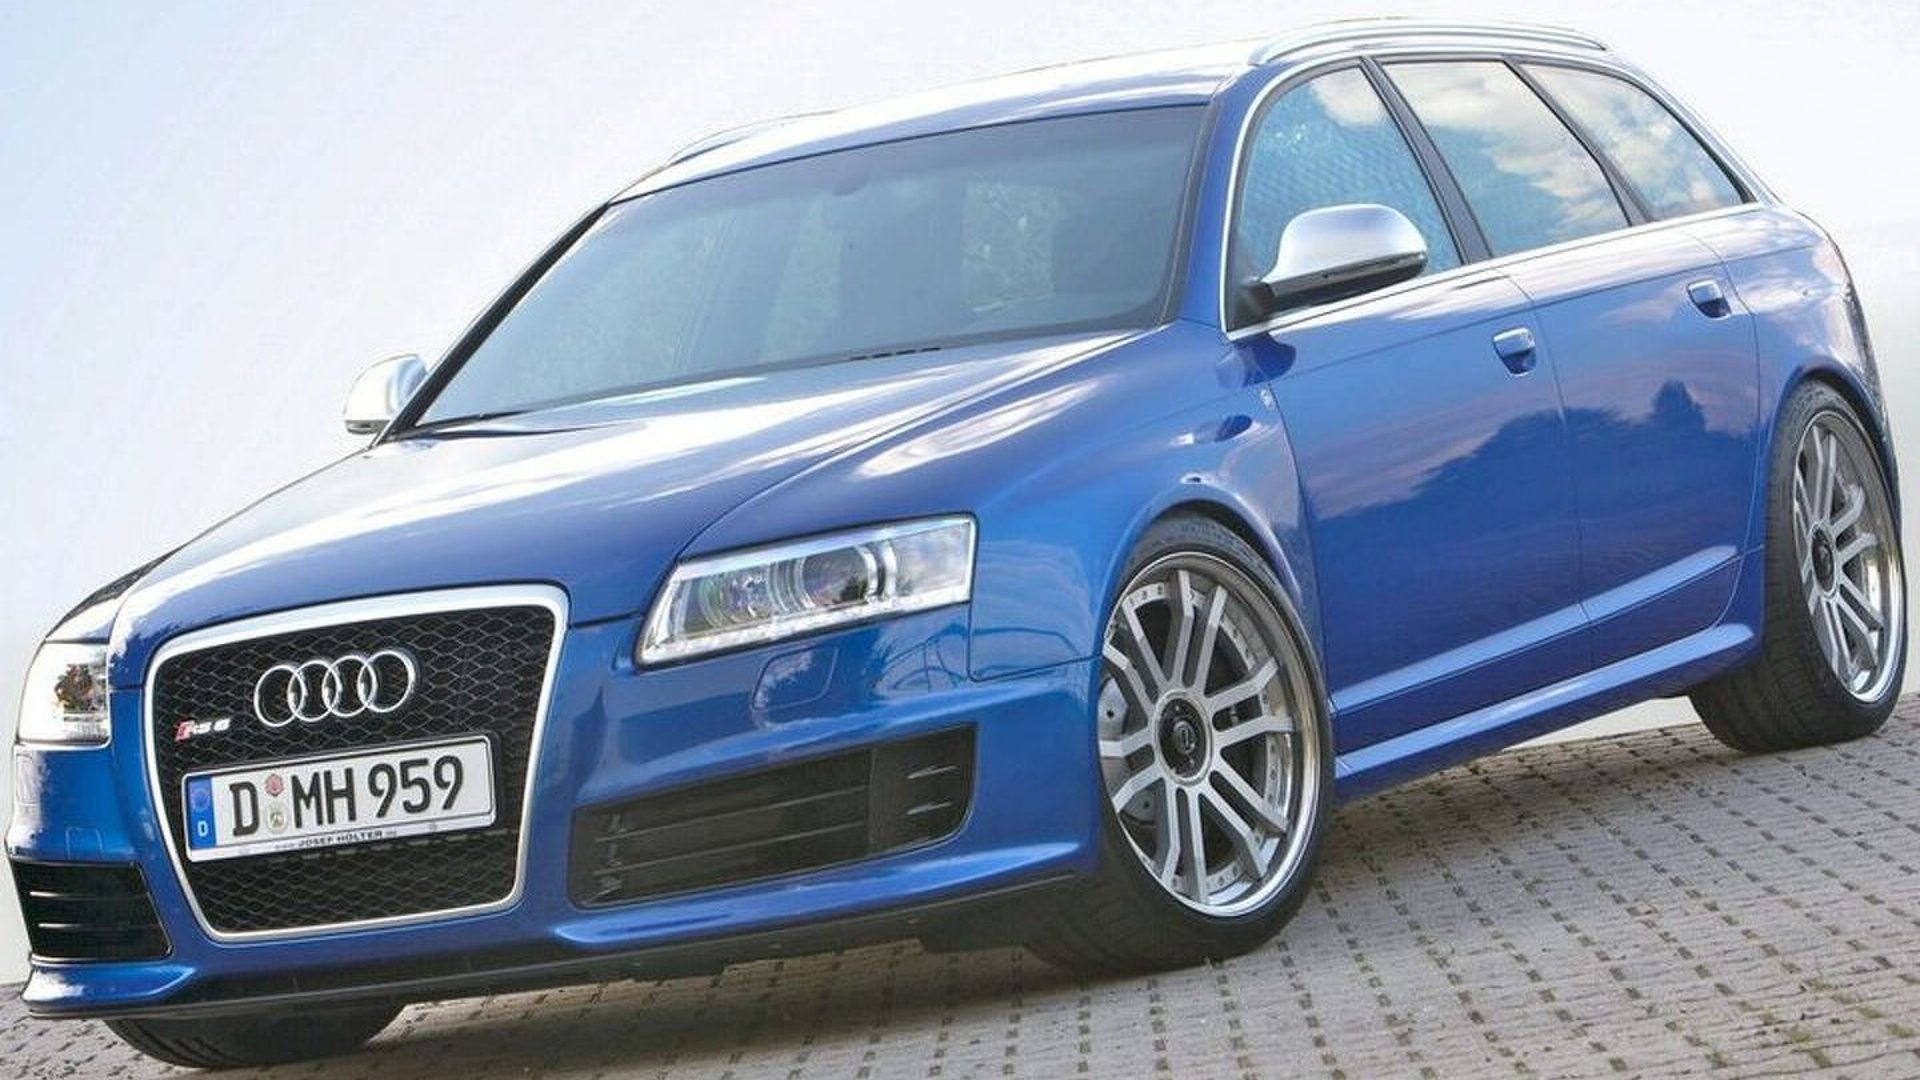 Imsa Joins the Audi RS6 Bandwagon with New Tuning Package